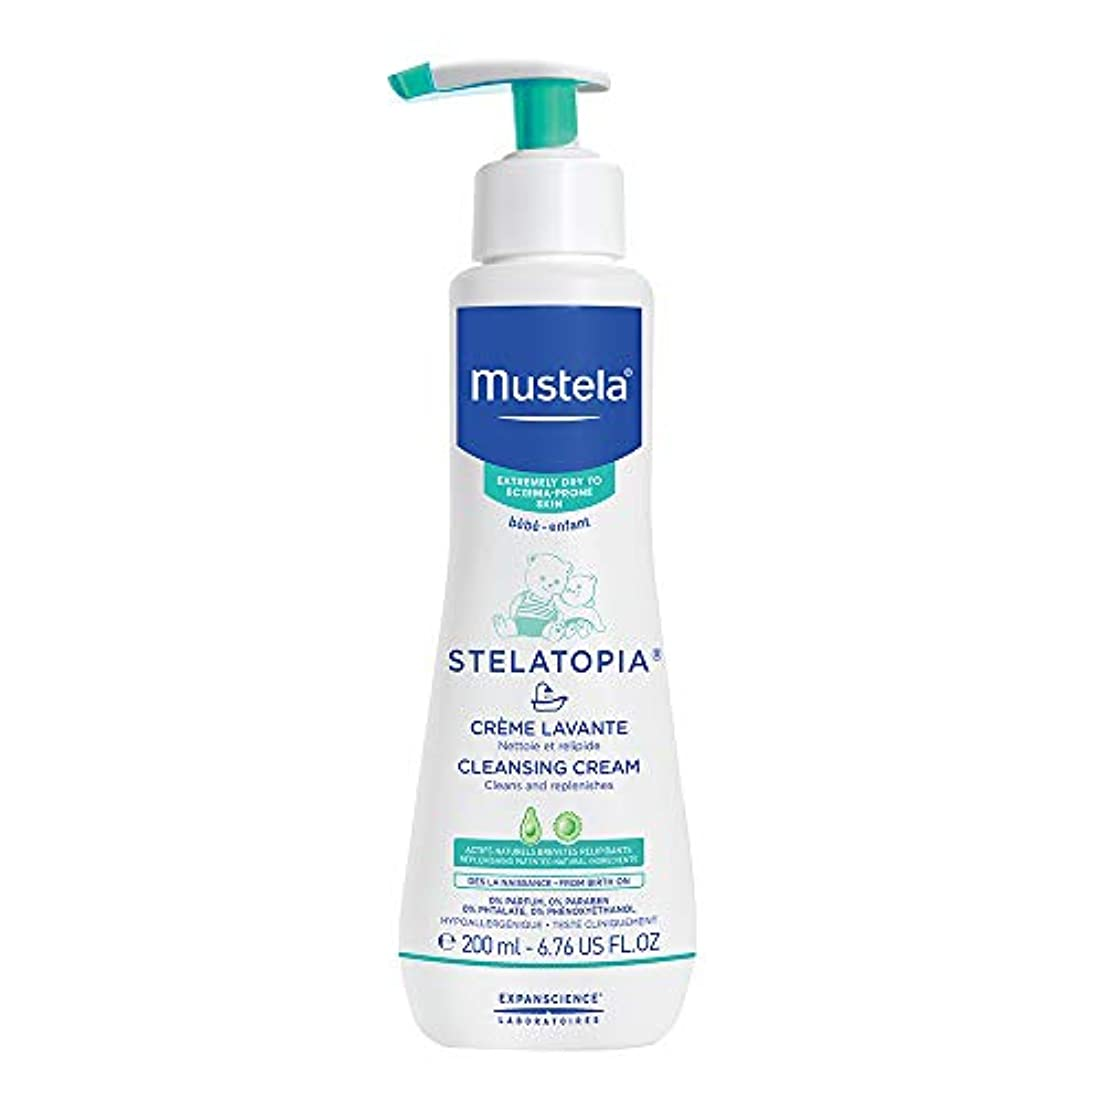 ヒューズラダ優雅なMustela - Stelatopia Cleansing Cream (6.76 oz.)